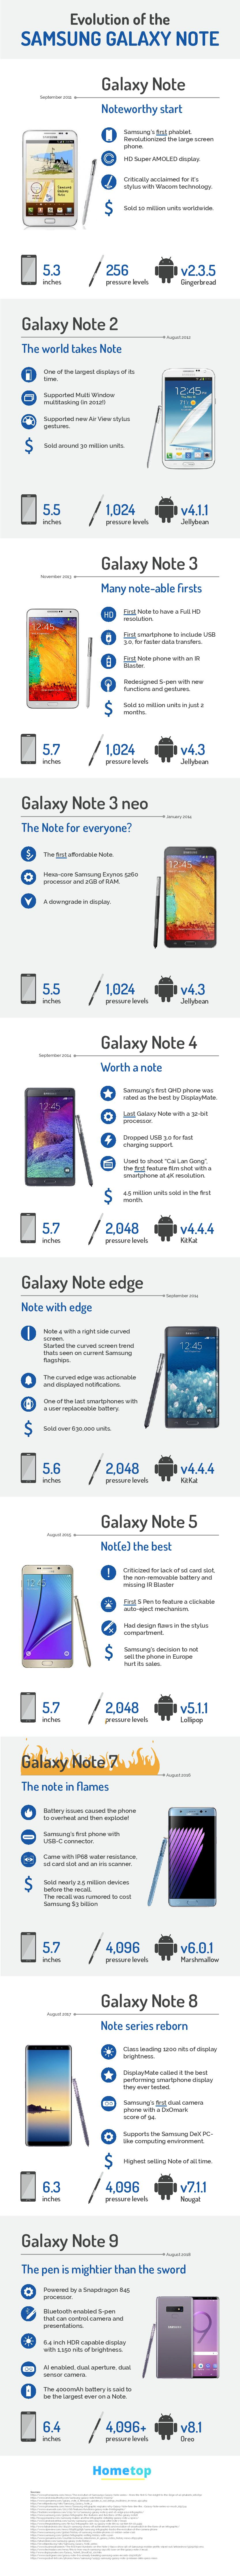 Galaxy note infographic final-page-001